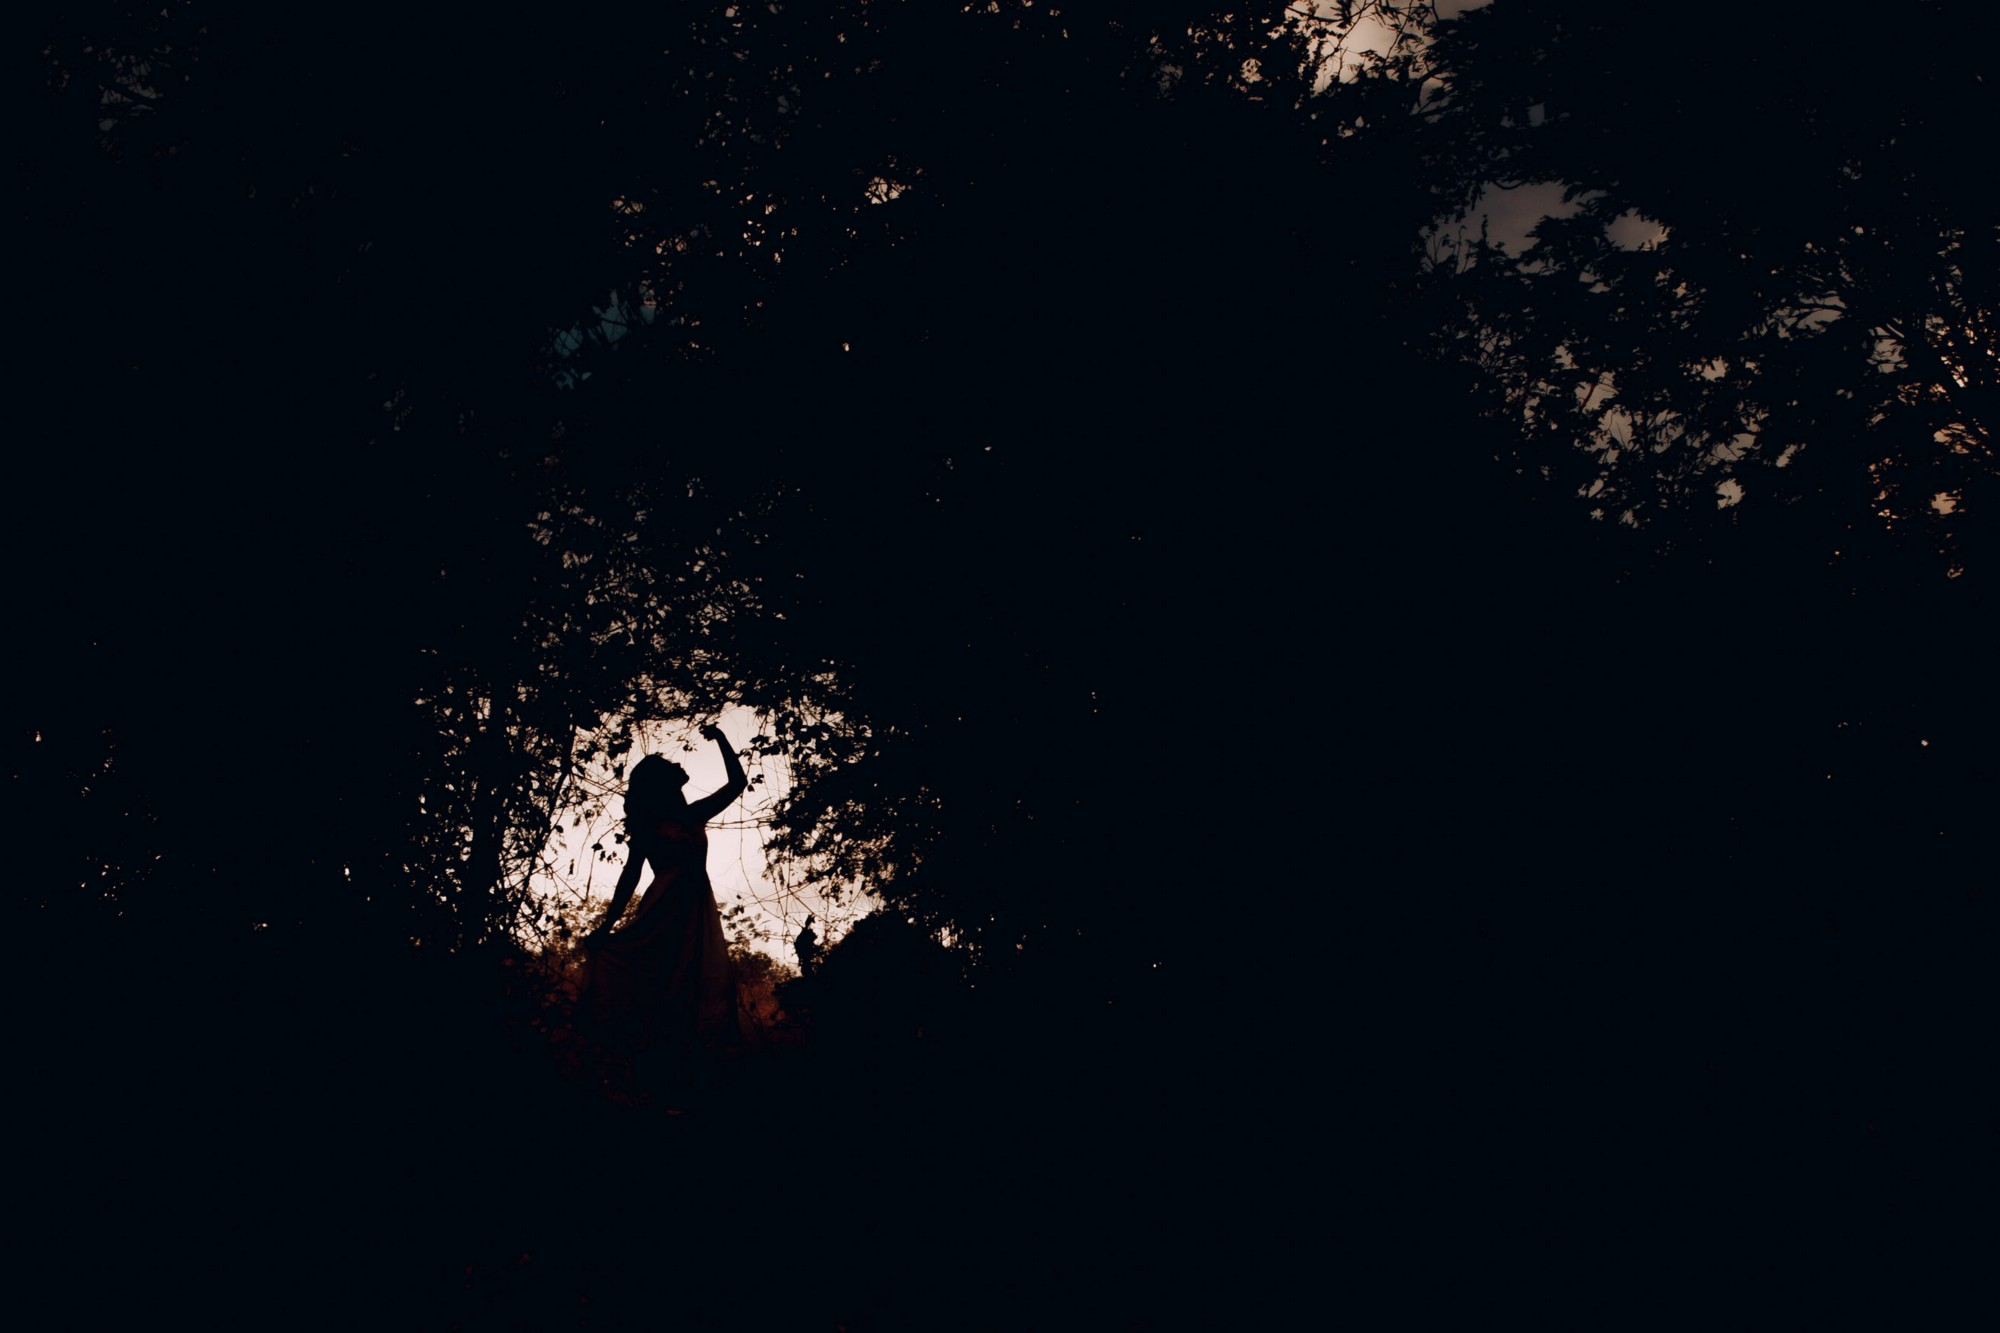 Silhouette of a girl in the woods